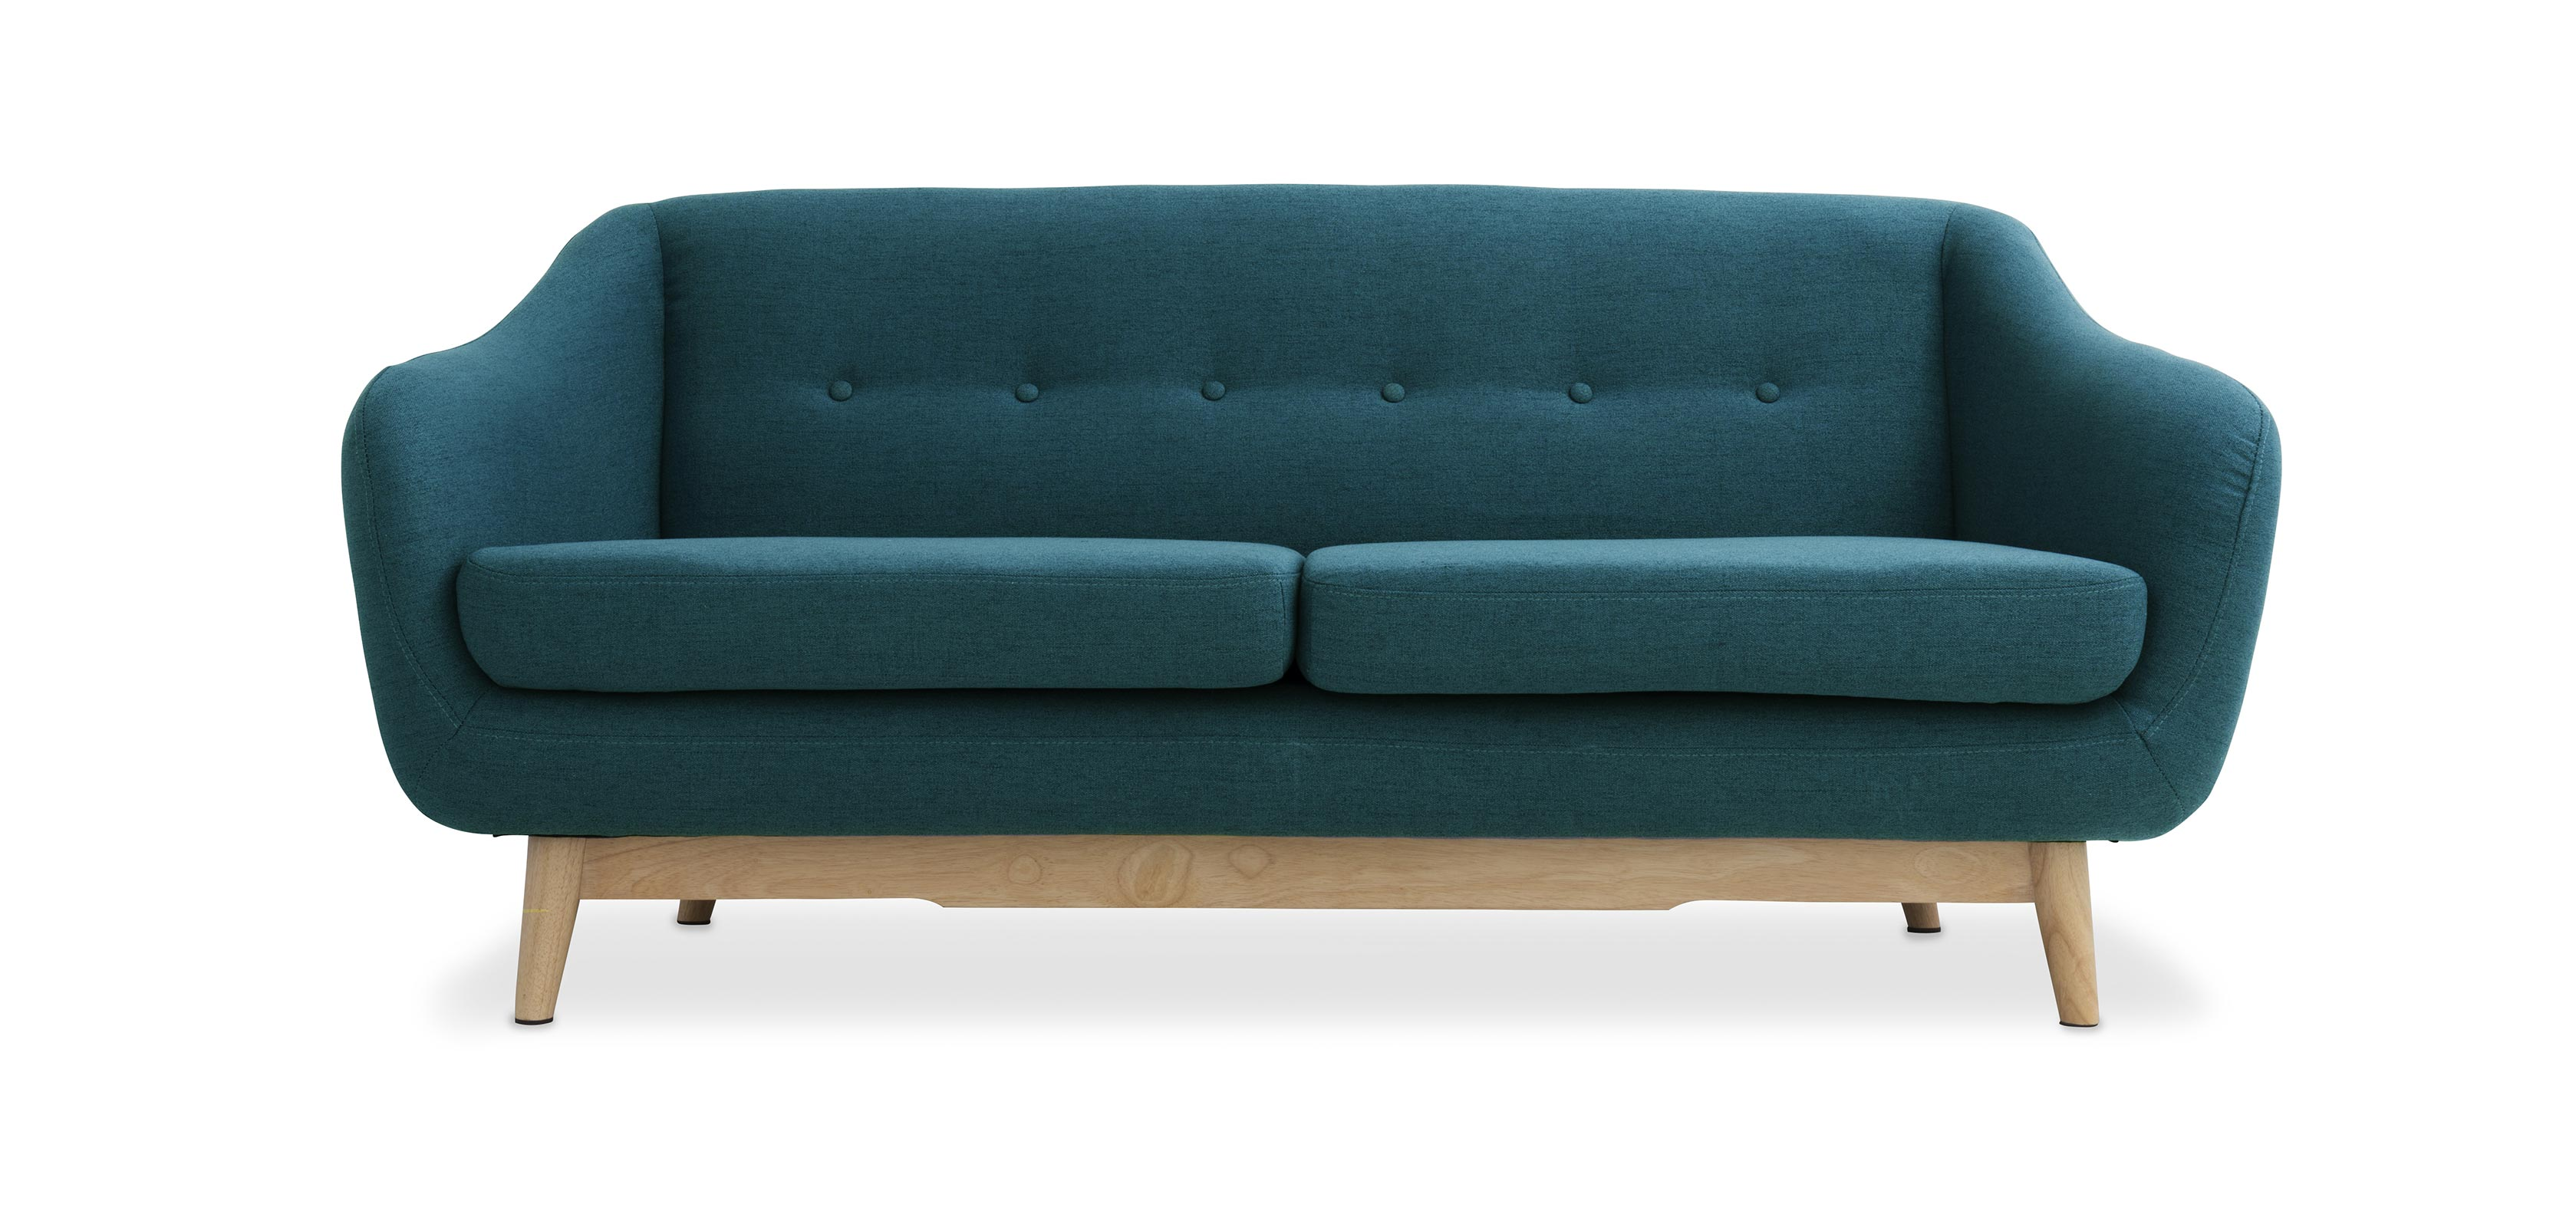 Sofa scandinavian sofa scandinavian centerfieldbar thesofa for Danish design sofa